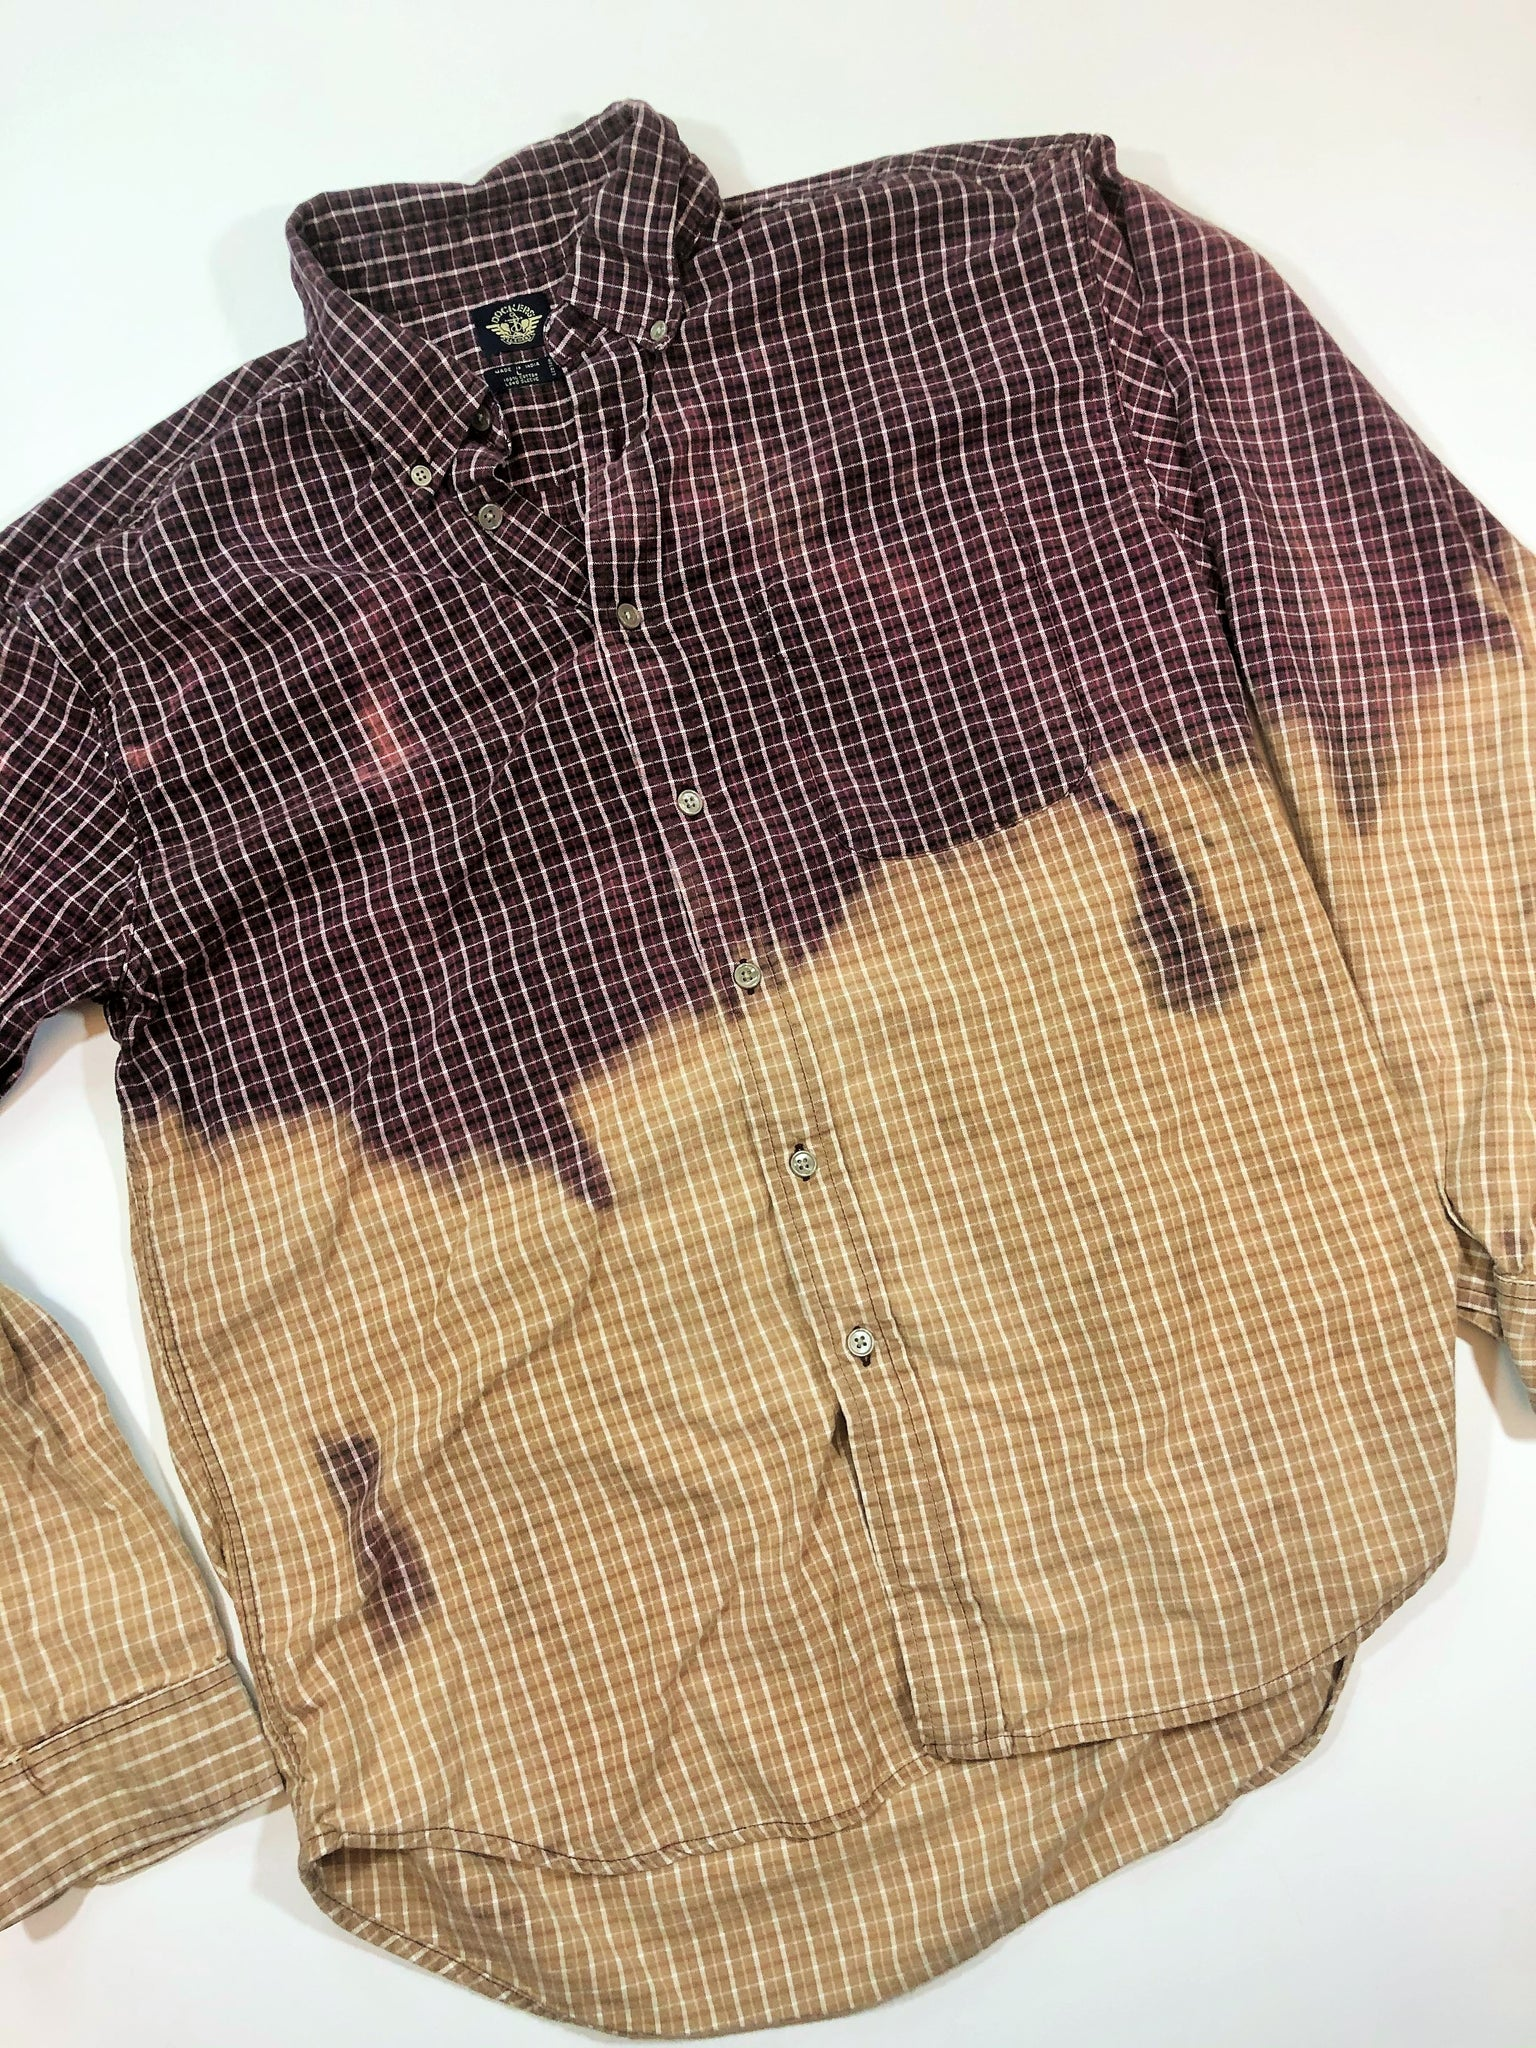 Distressed Bleached Shirt  - Dockers - Men's Large - True Bliss Boutique